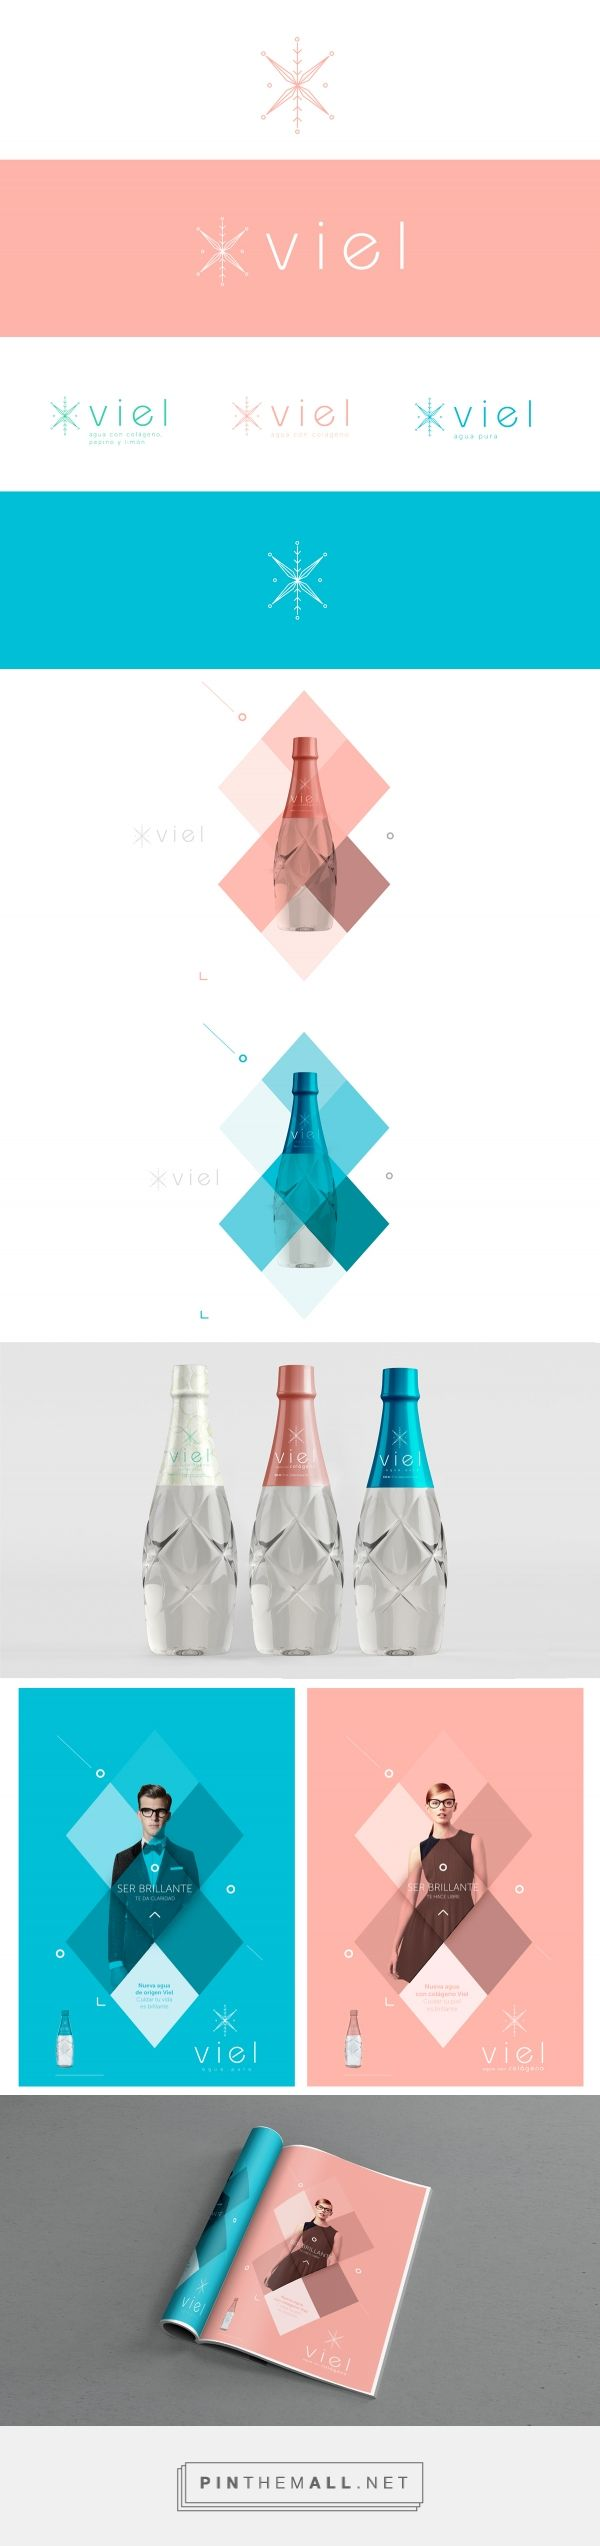 VIEL Hydrolyzed Collagen Water Packaging and Branding by Carlos Montoya | Fivestar Branding Agency – Design and Branding Agency & Curated Inspiration Gallery